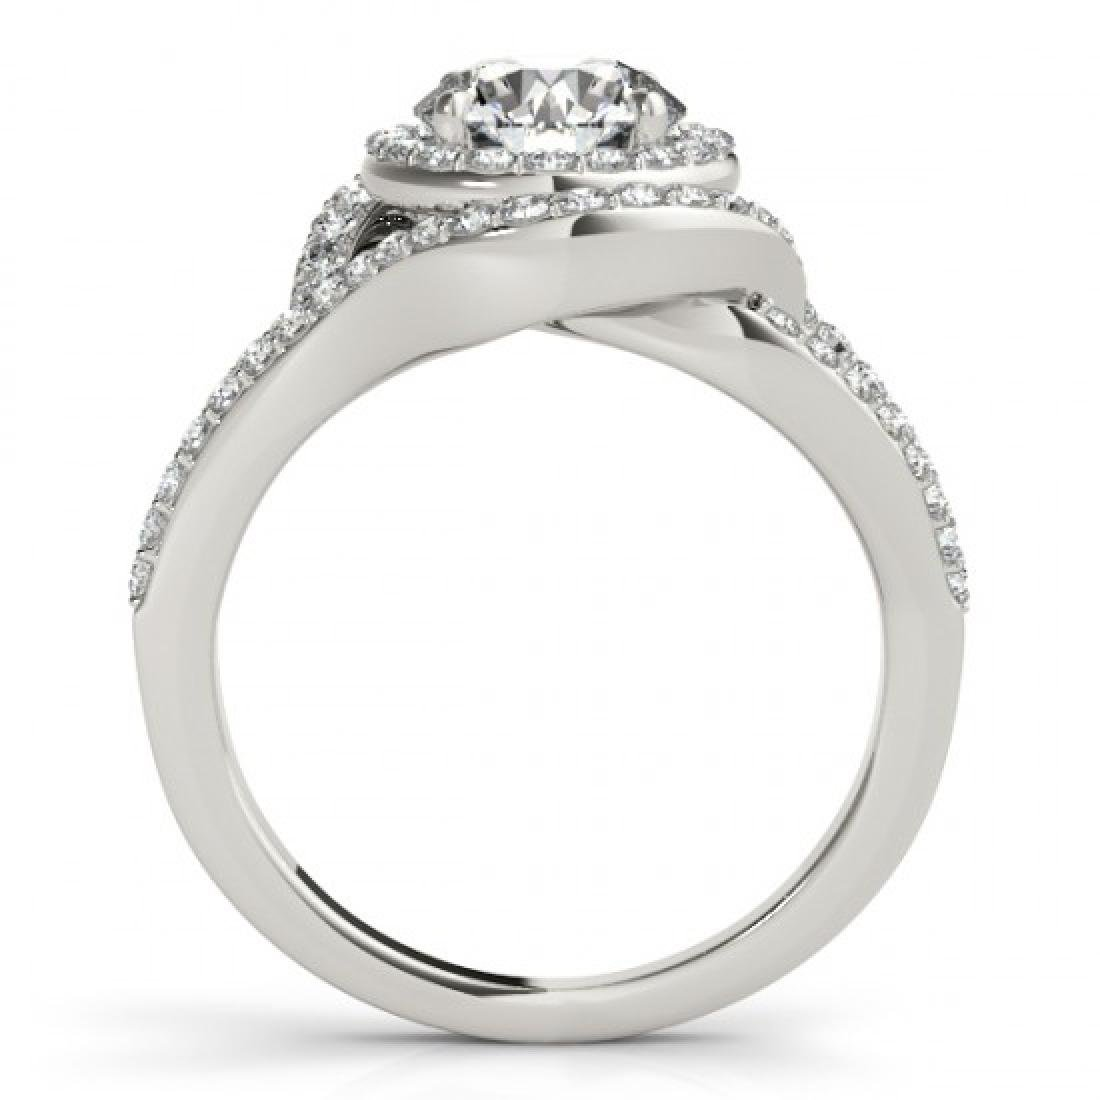 1.6 CTW Certified VS/SI Diamond Solitaire Halo Ring 14K - 2